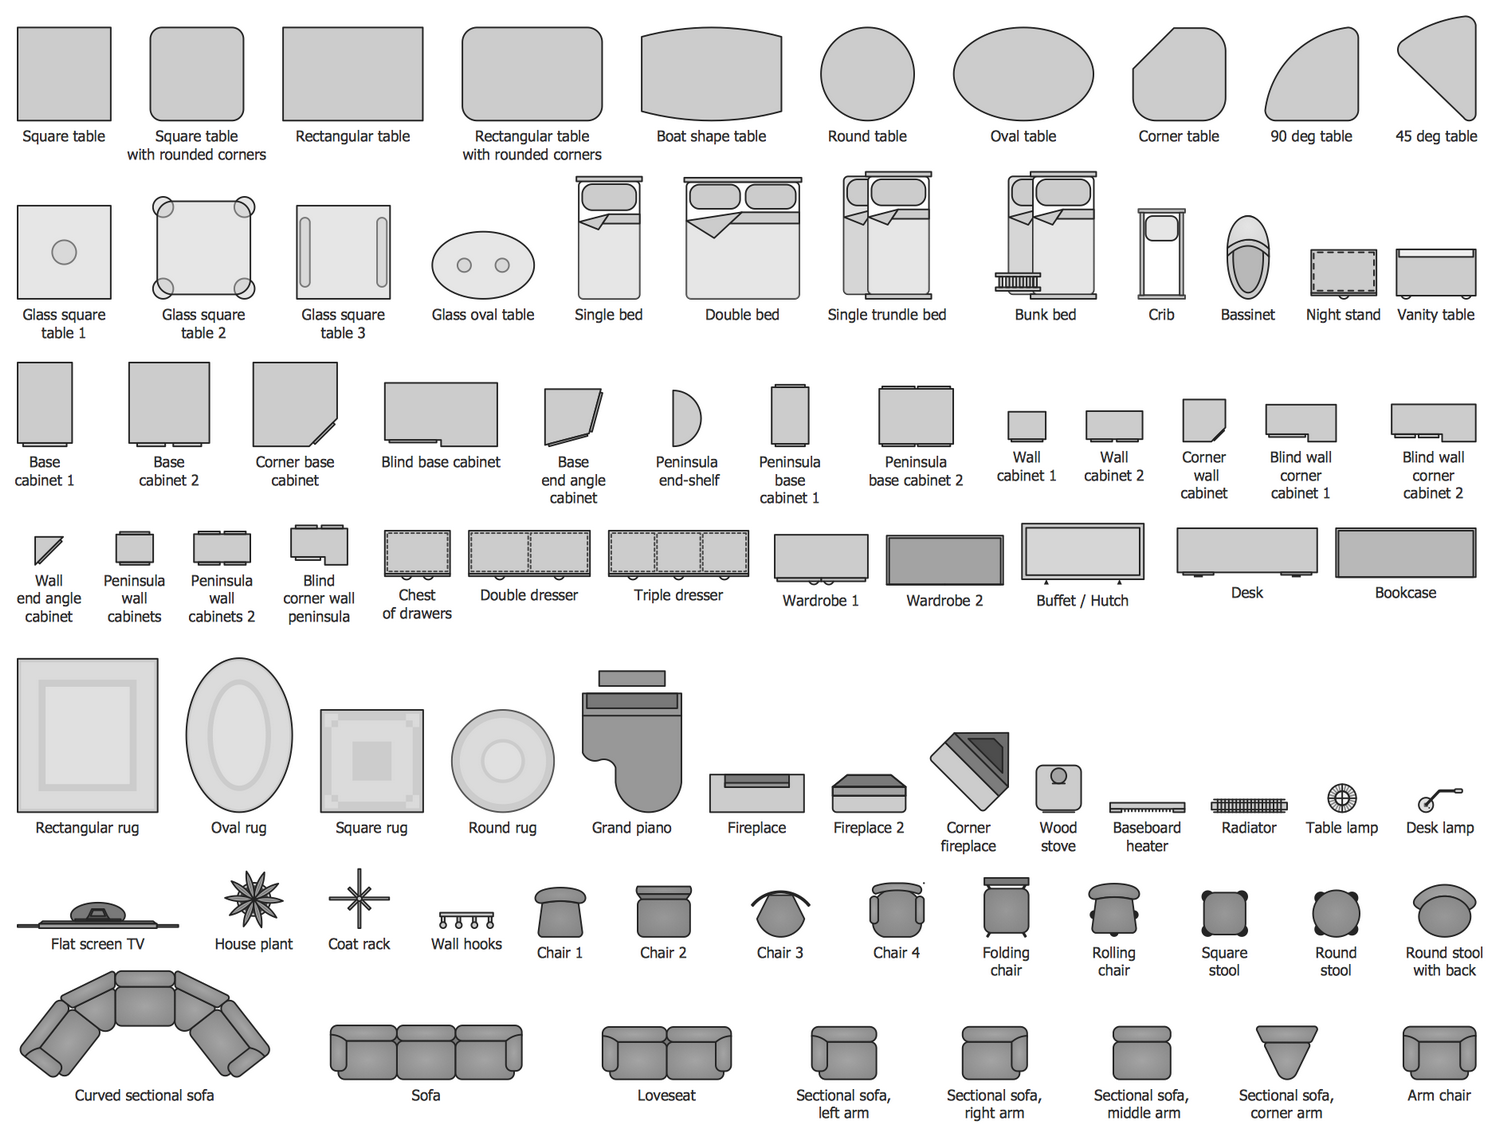 Basic floor plans solution conceptdraw design elements basic furniture malvernweather Image collections